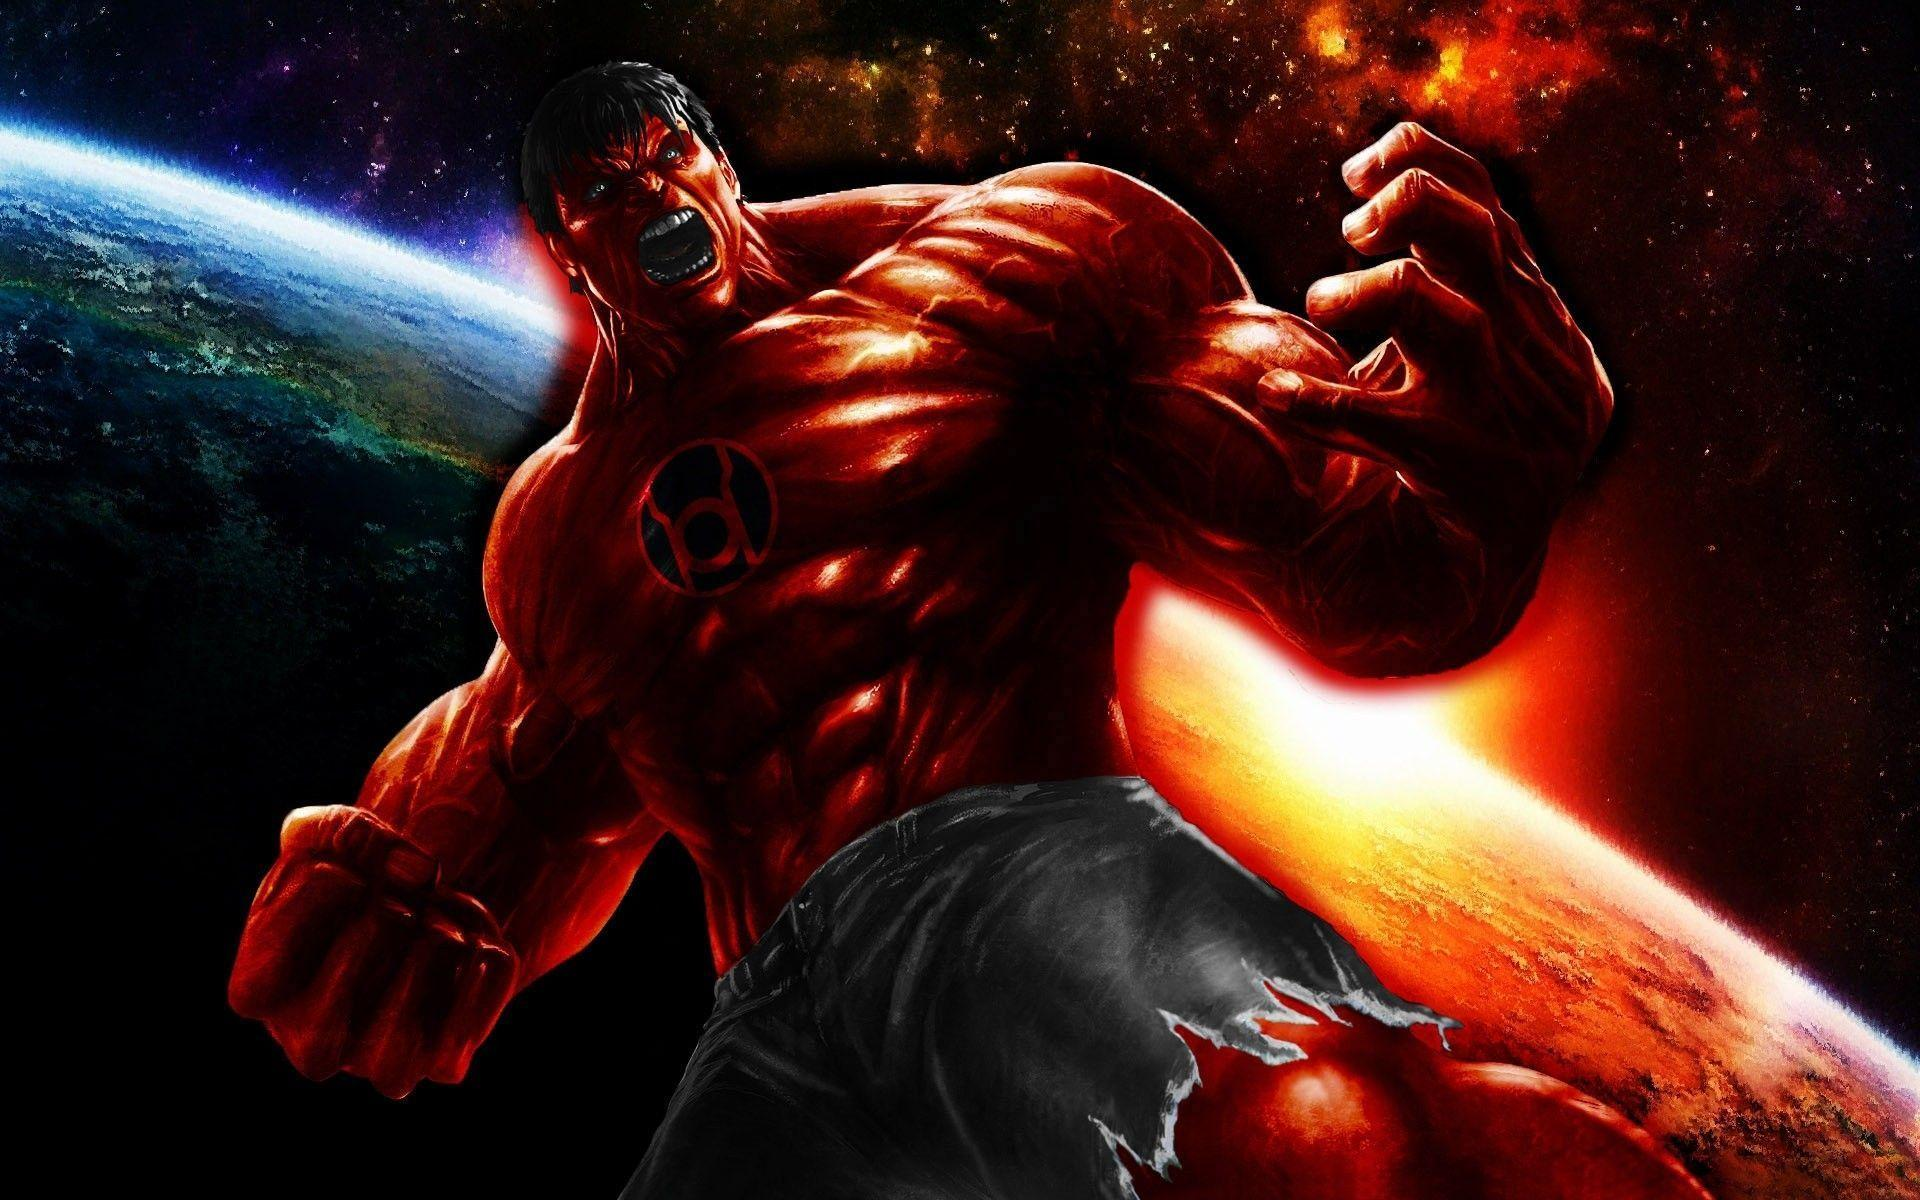 Red hulk wallpapers wallpaper cave - Hulk hd images free download ...